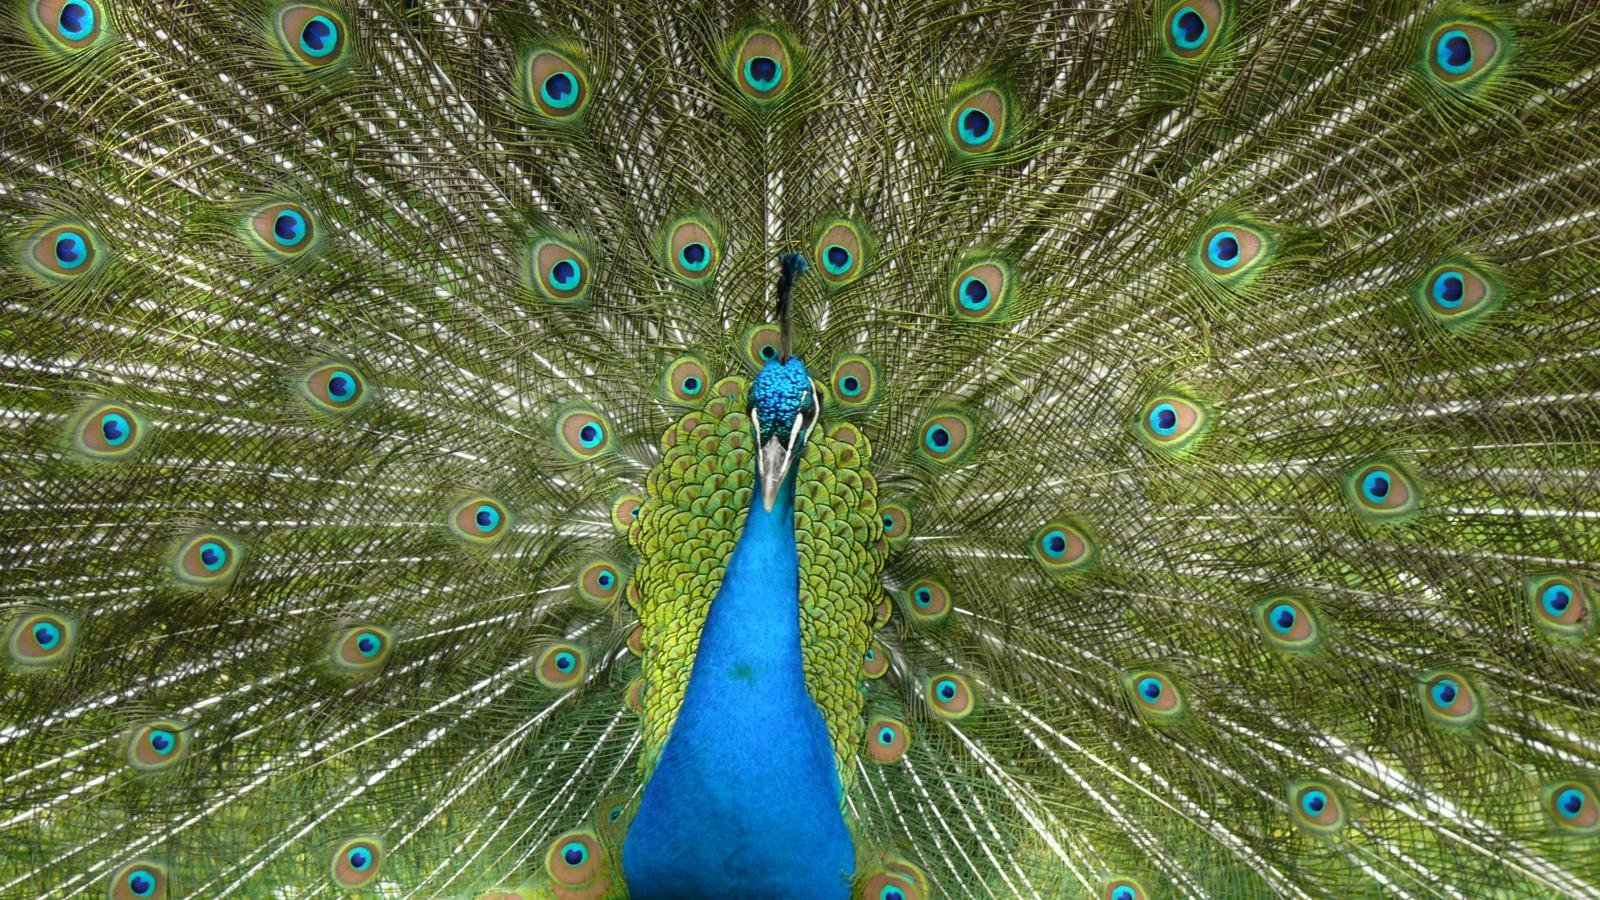 Free download Peacock wallpaper ID:151798 hd 1600x900 for desktop